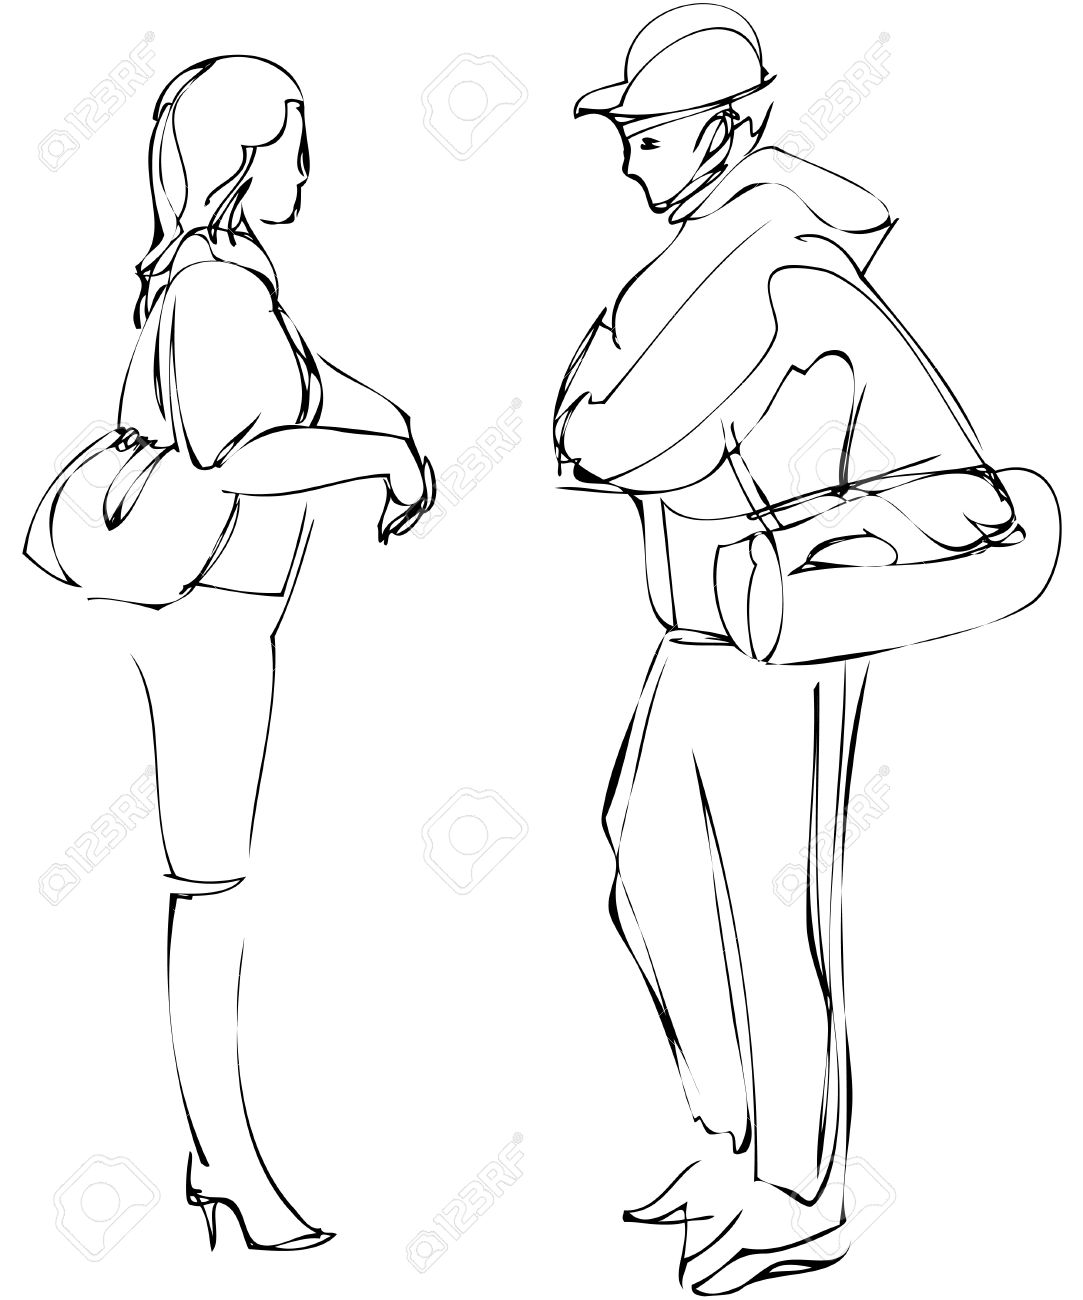 1083x1300 A Sketch Of Boy And Girl Talking While Standing Royalty Free